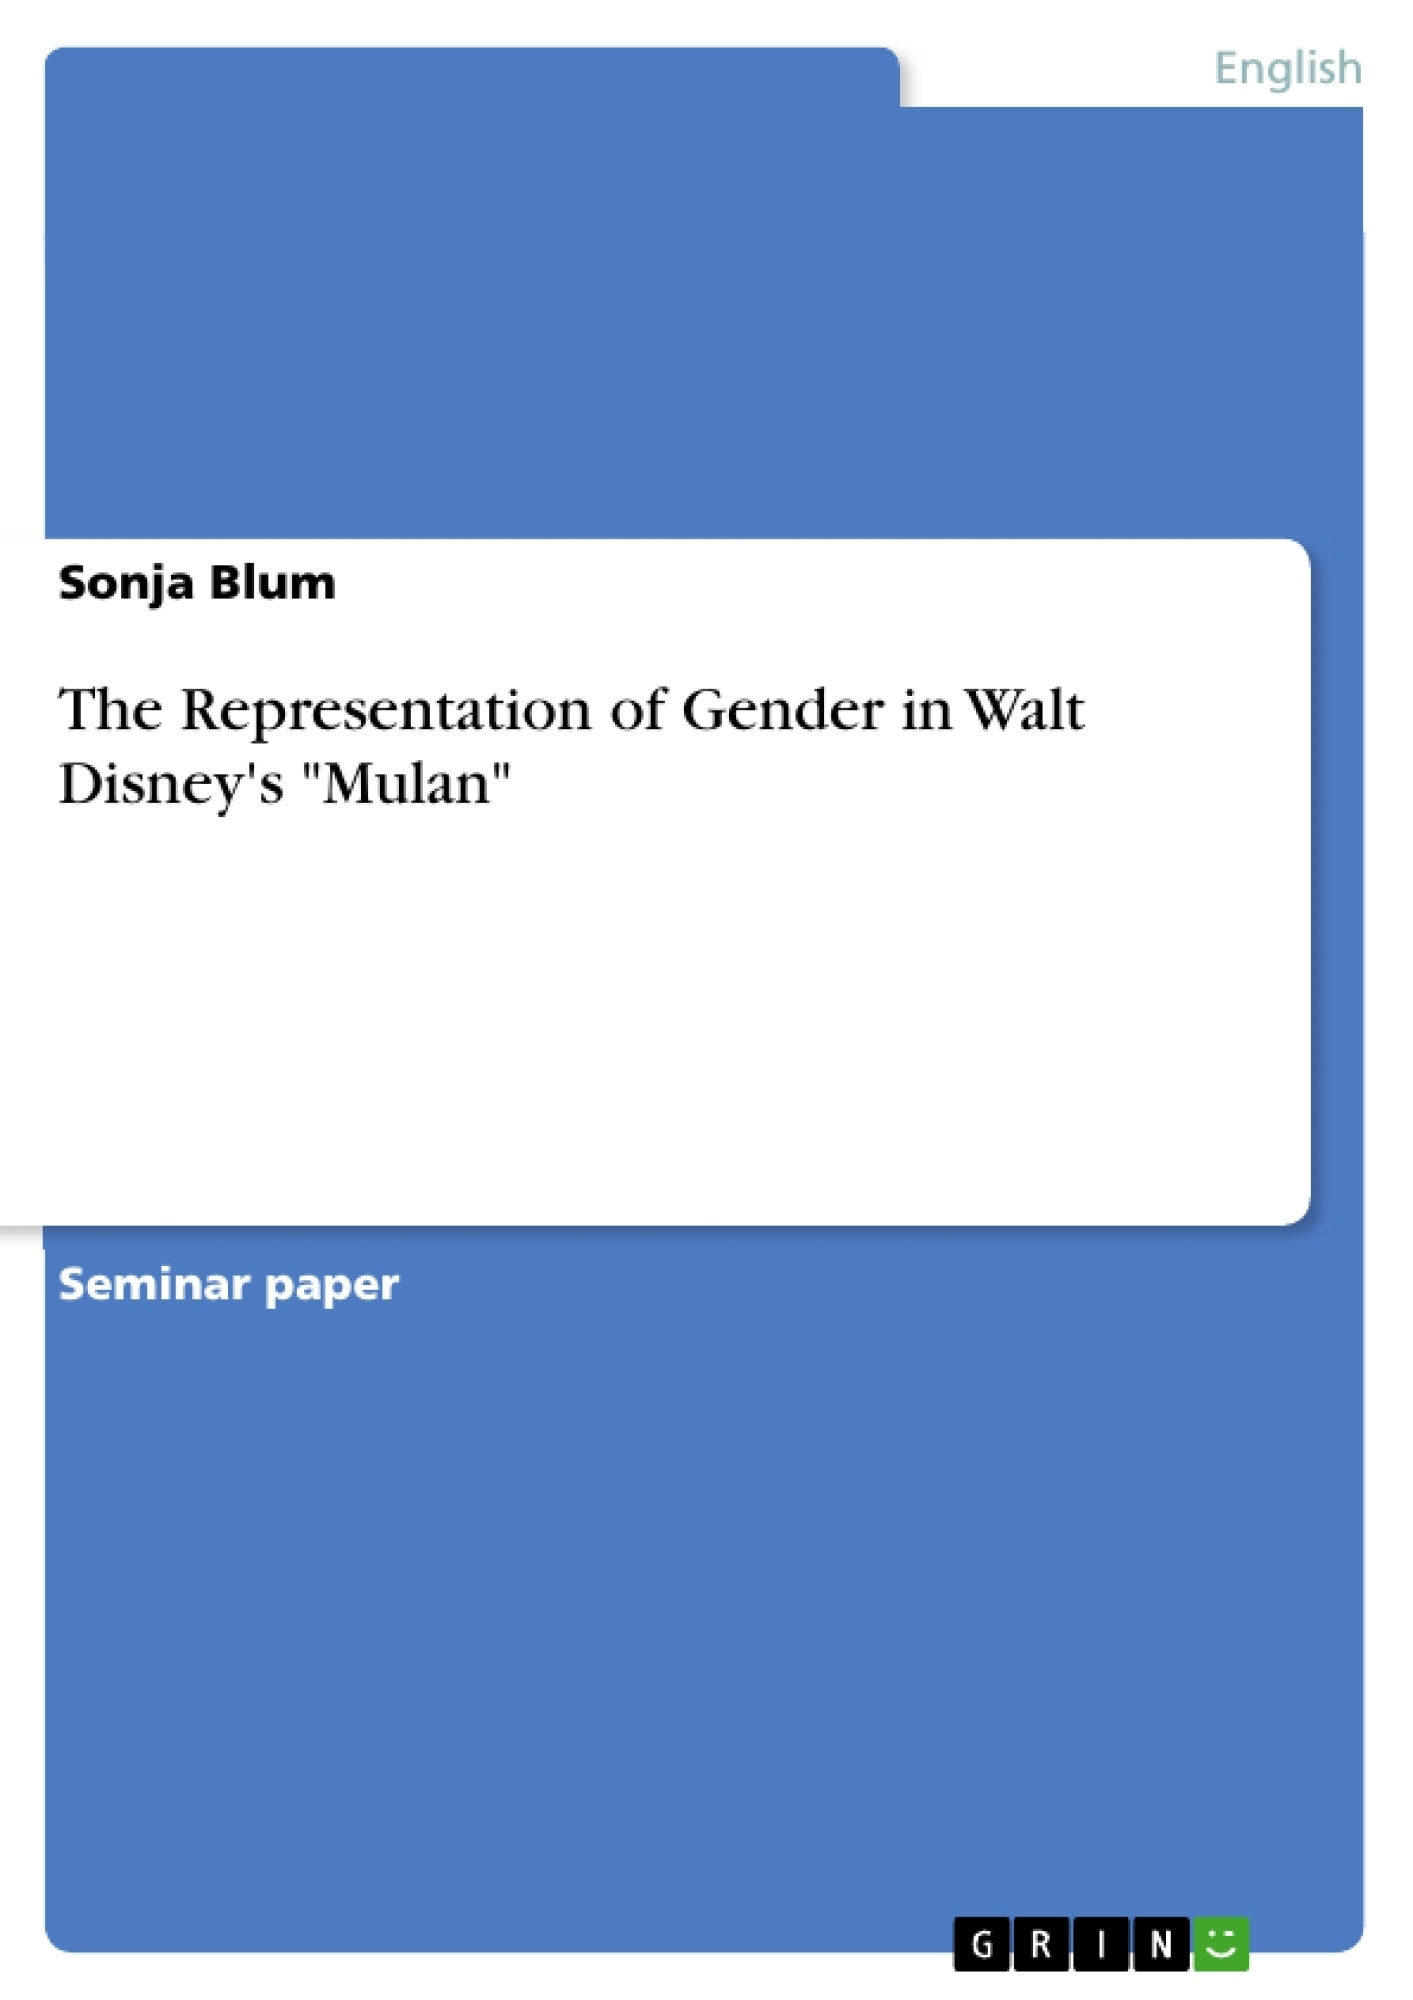 the representation of gender in walt disney s mulan publish  the representation of gender in walt disney s mulan publish your master s thesis bachelor s thesis essay or term paper